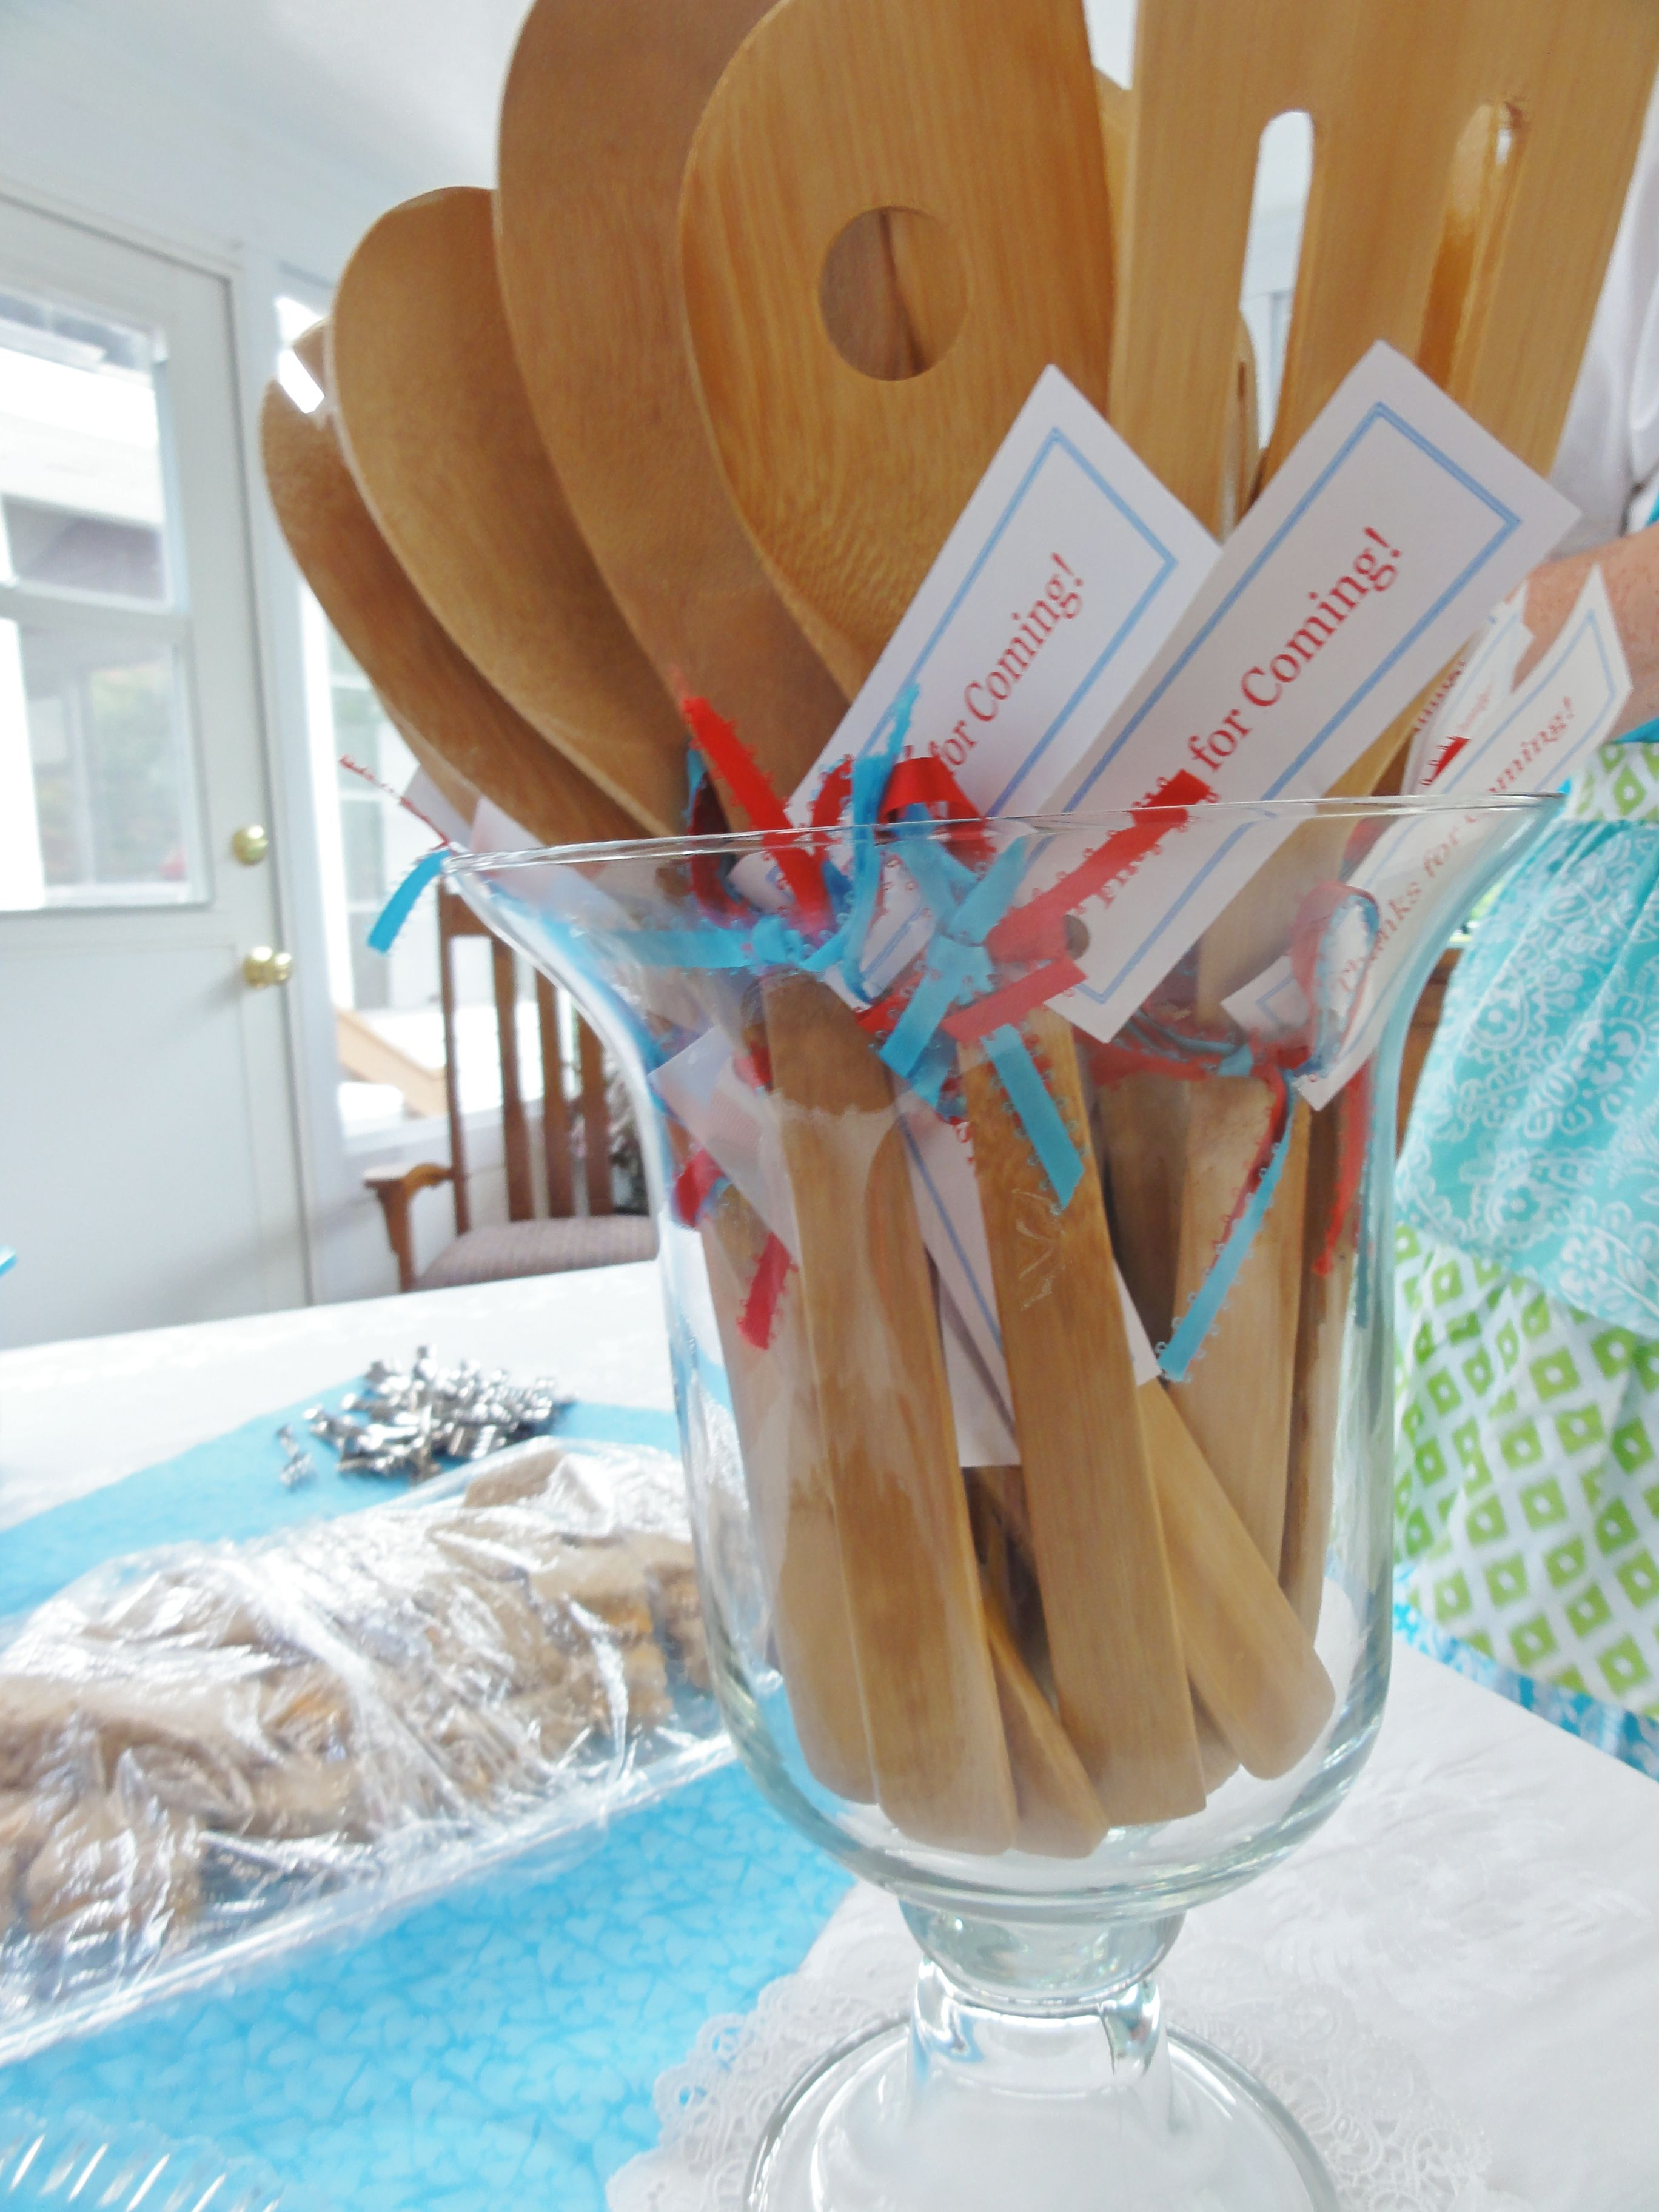 Retro Housewife Bridal Shower The Favors Super Cheap And Cute Throughout Inexpensive